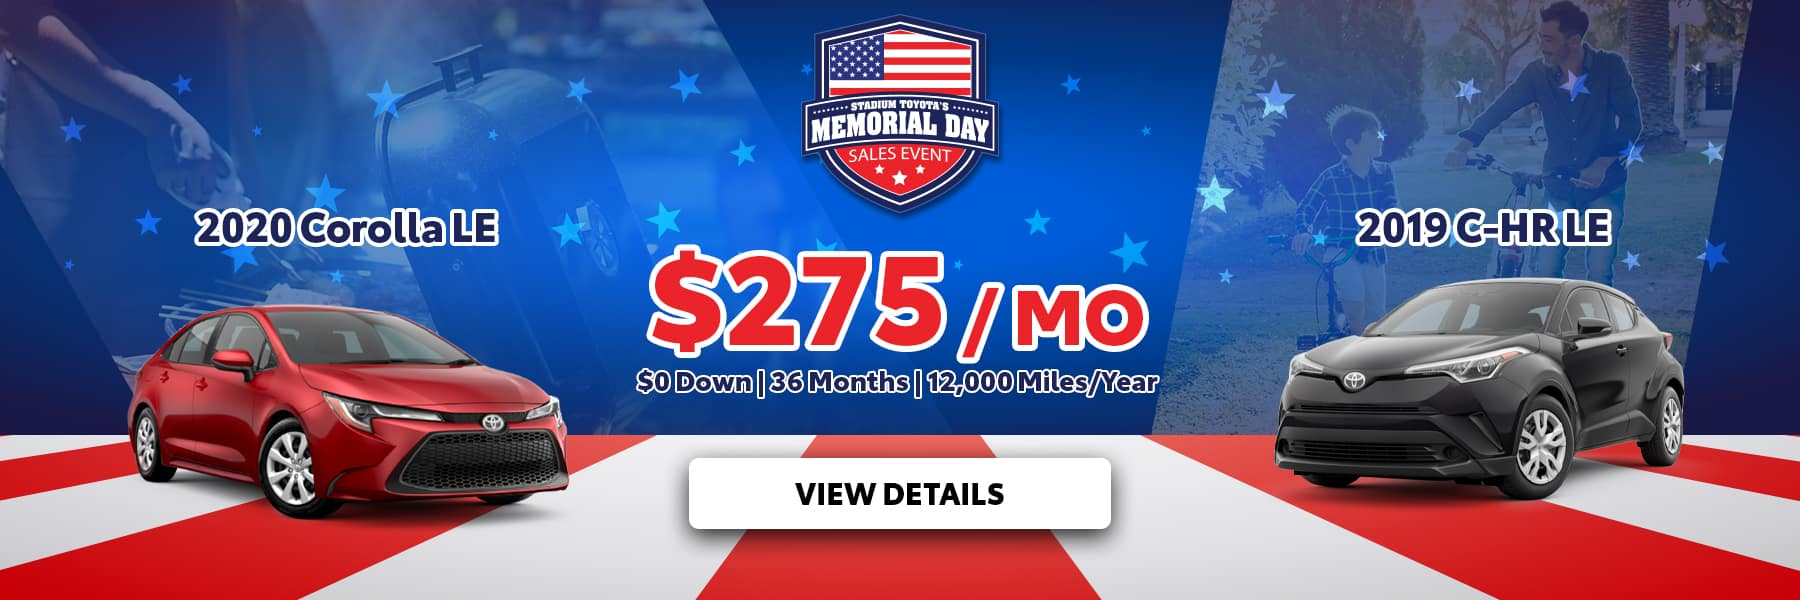 Memorial Day Offer Corolla C-HR